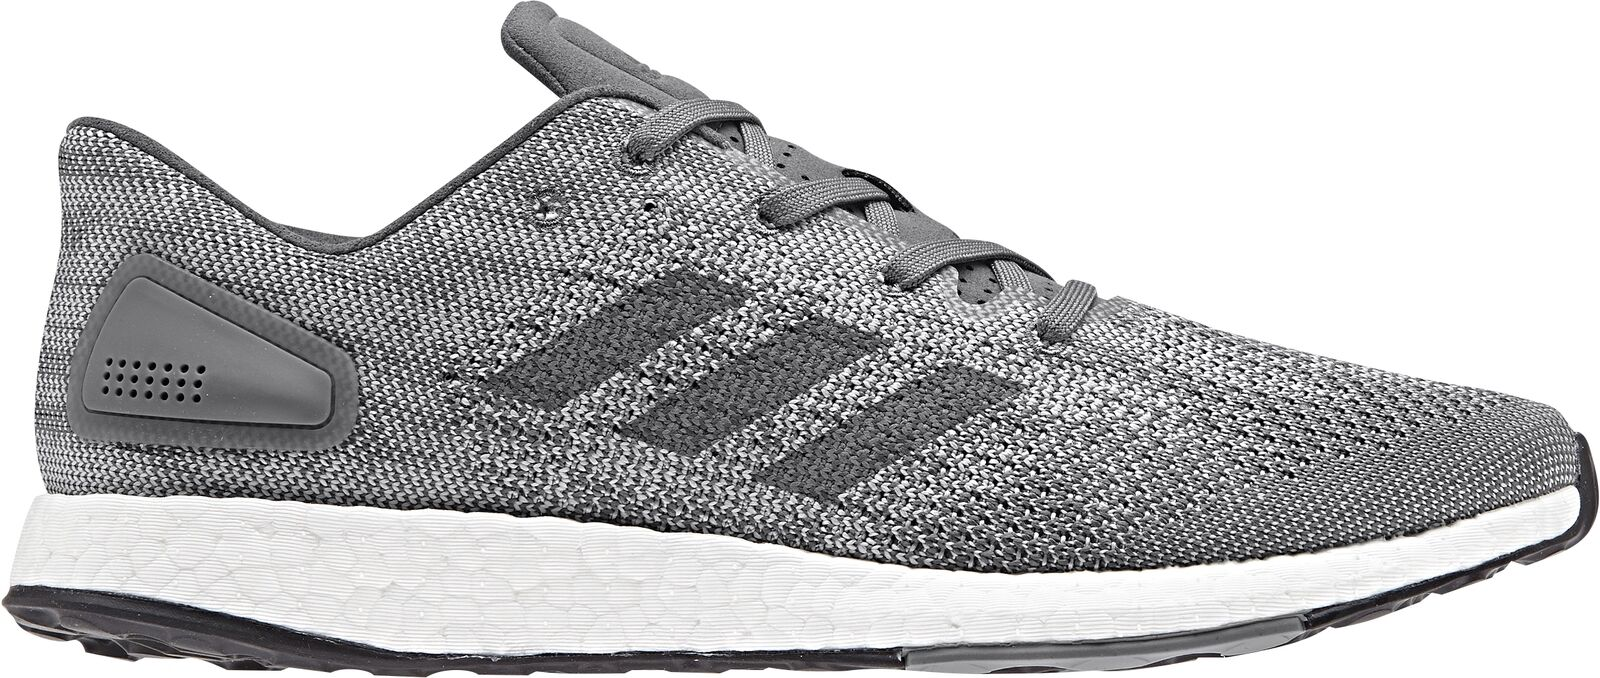 Adidas Pure BOOST DPR Mens Running shoes Grey Natural Trainers